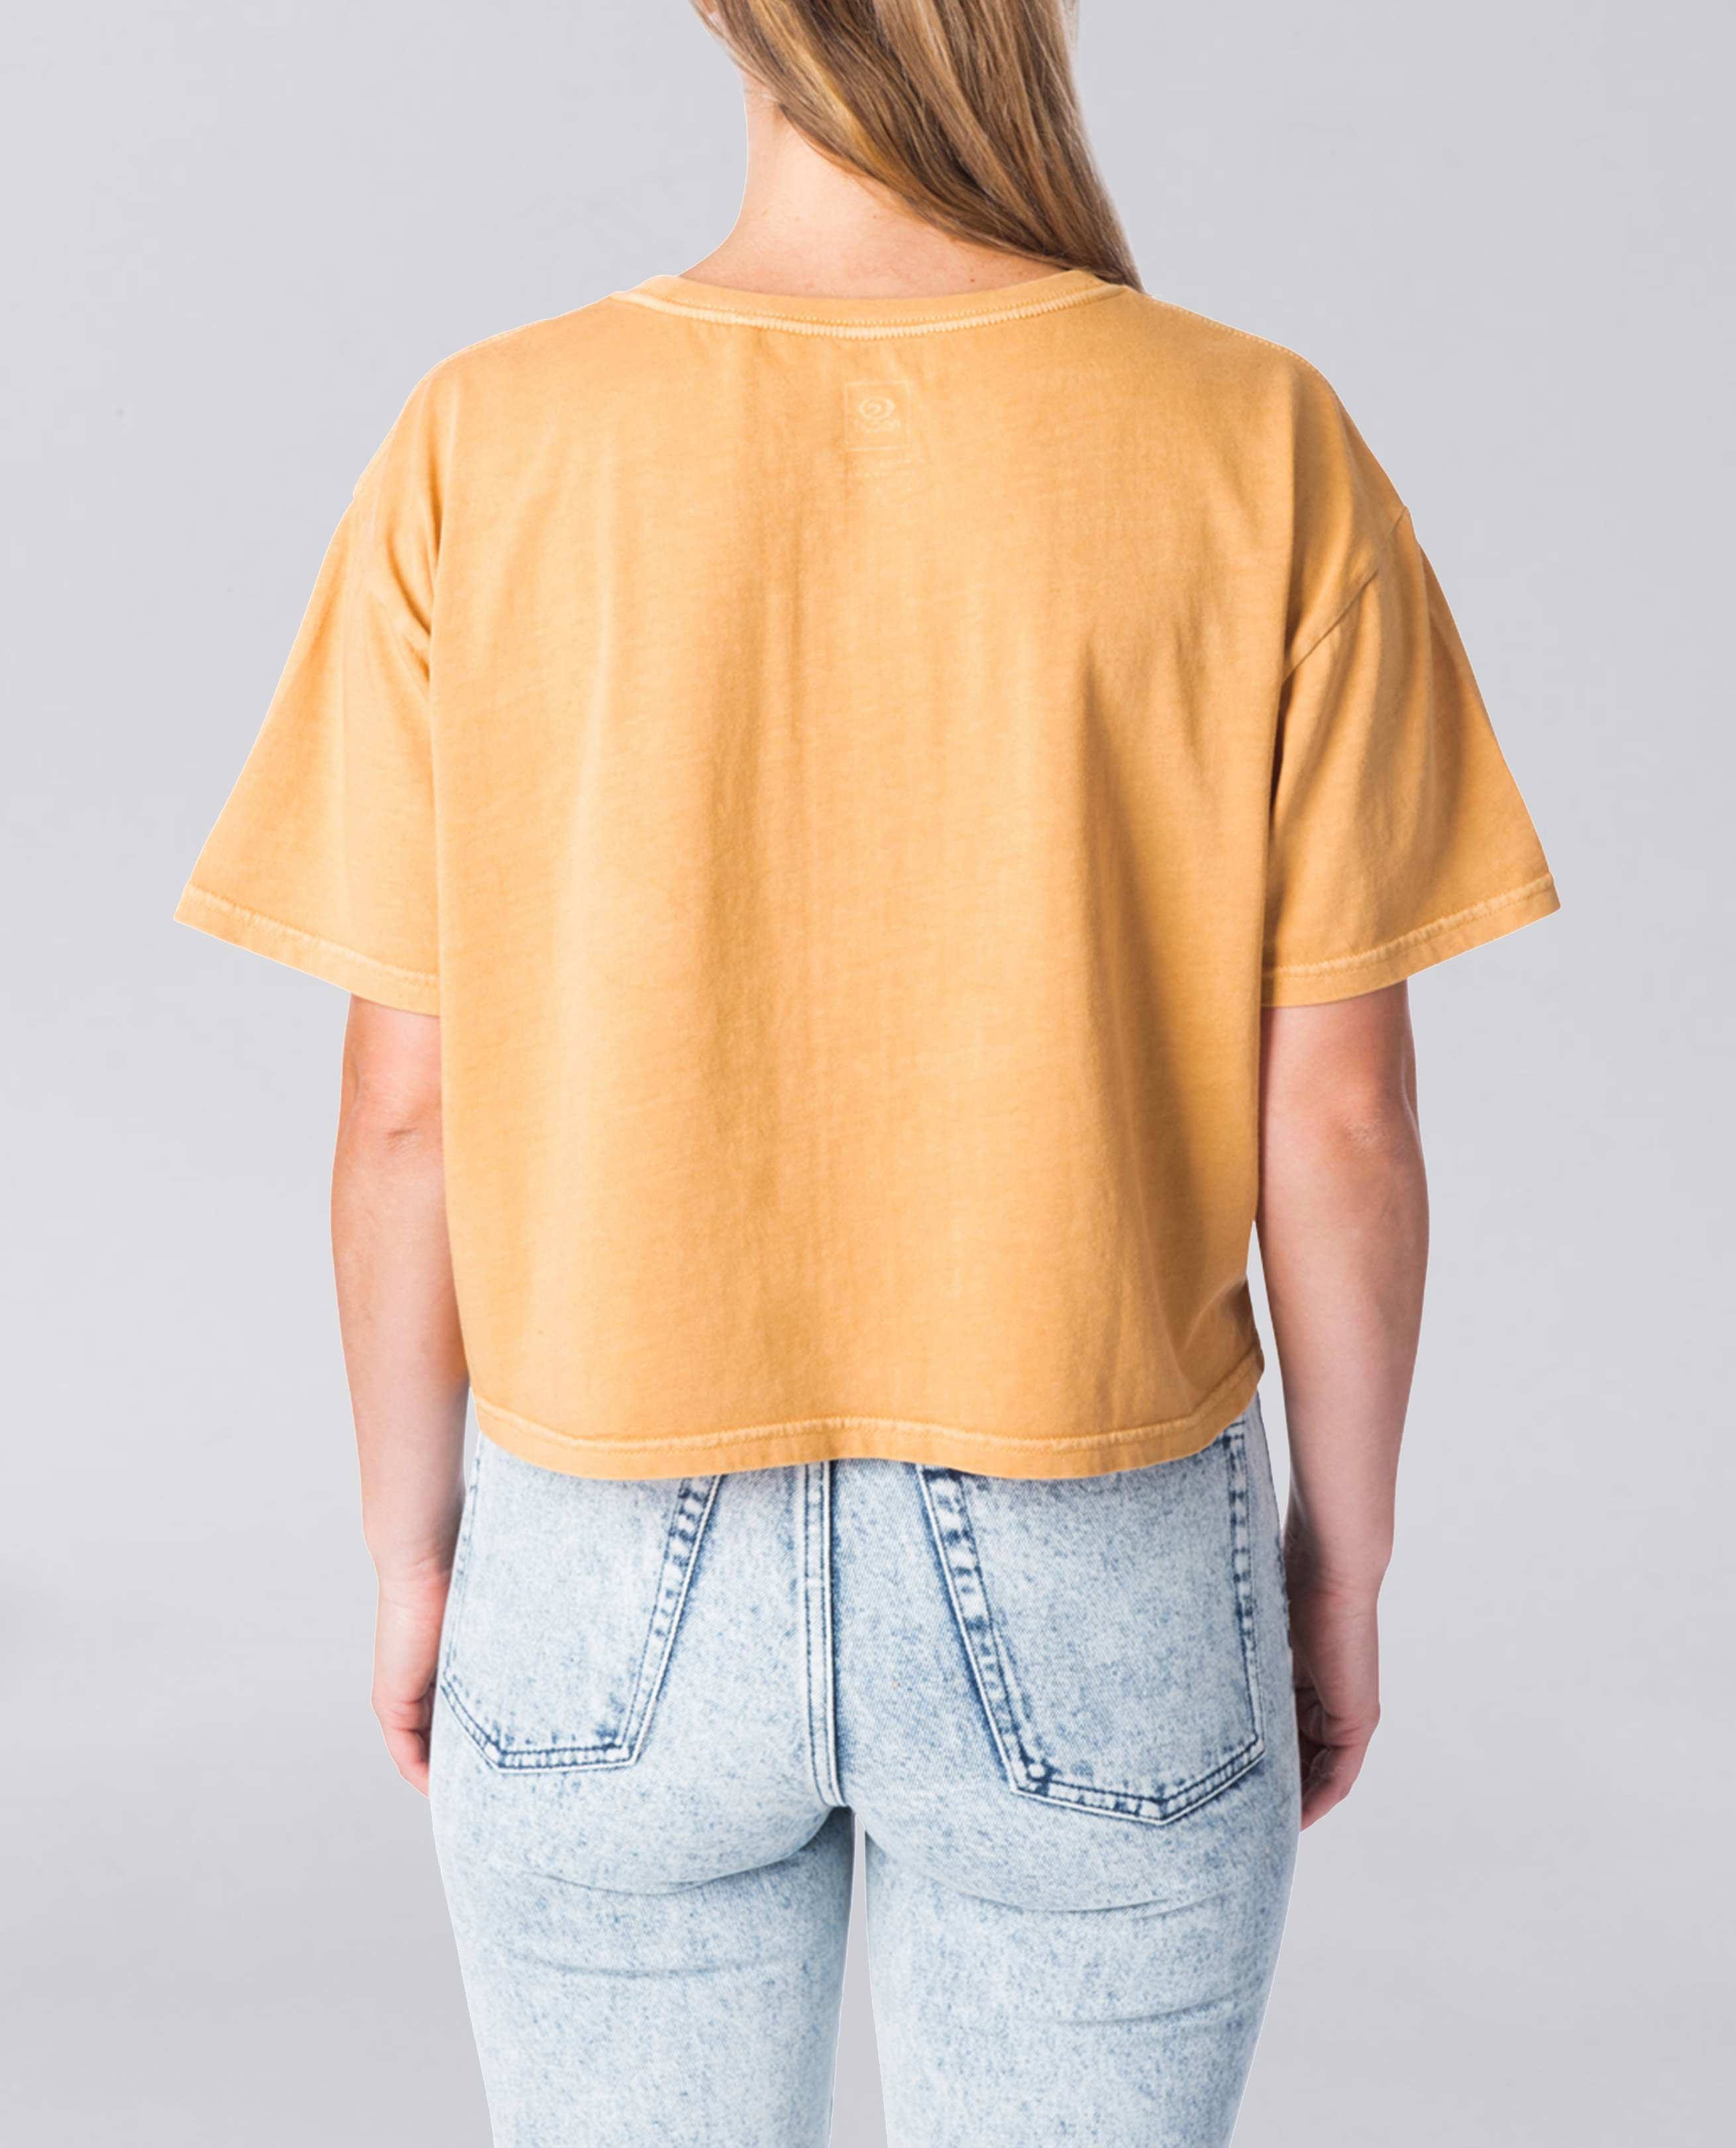 Wettie Crop Tee